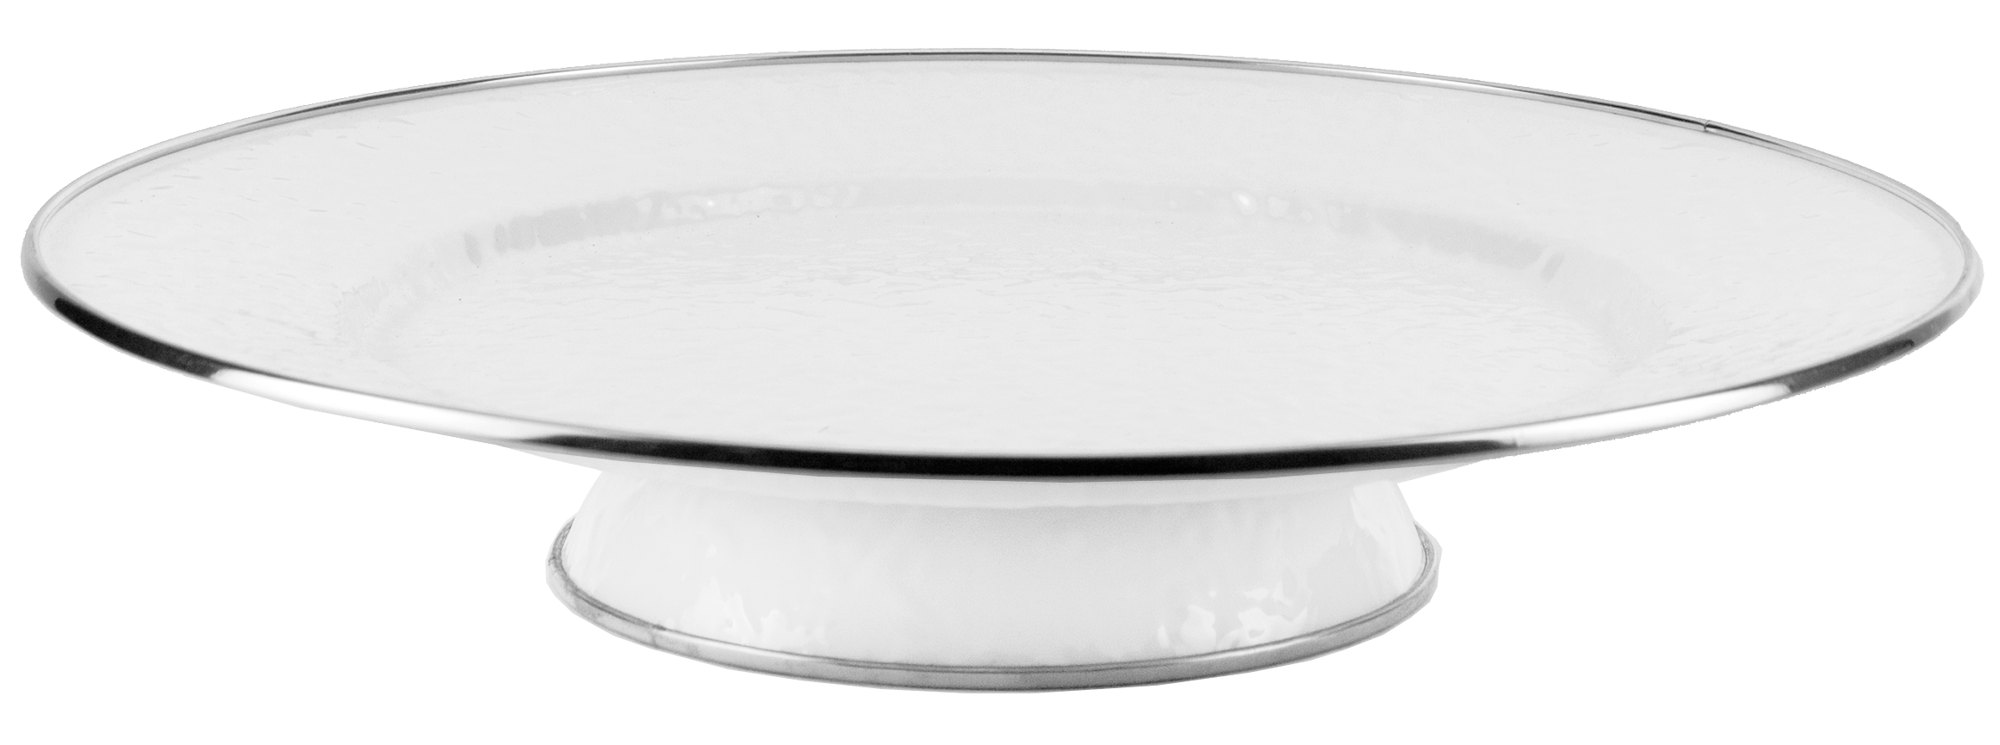 WW76- Enamelware White on White Cake Plate by Golden Rabbit